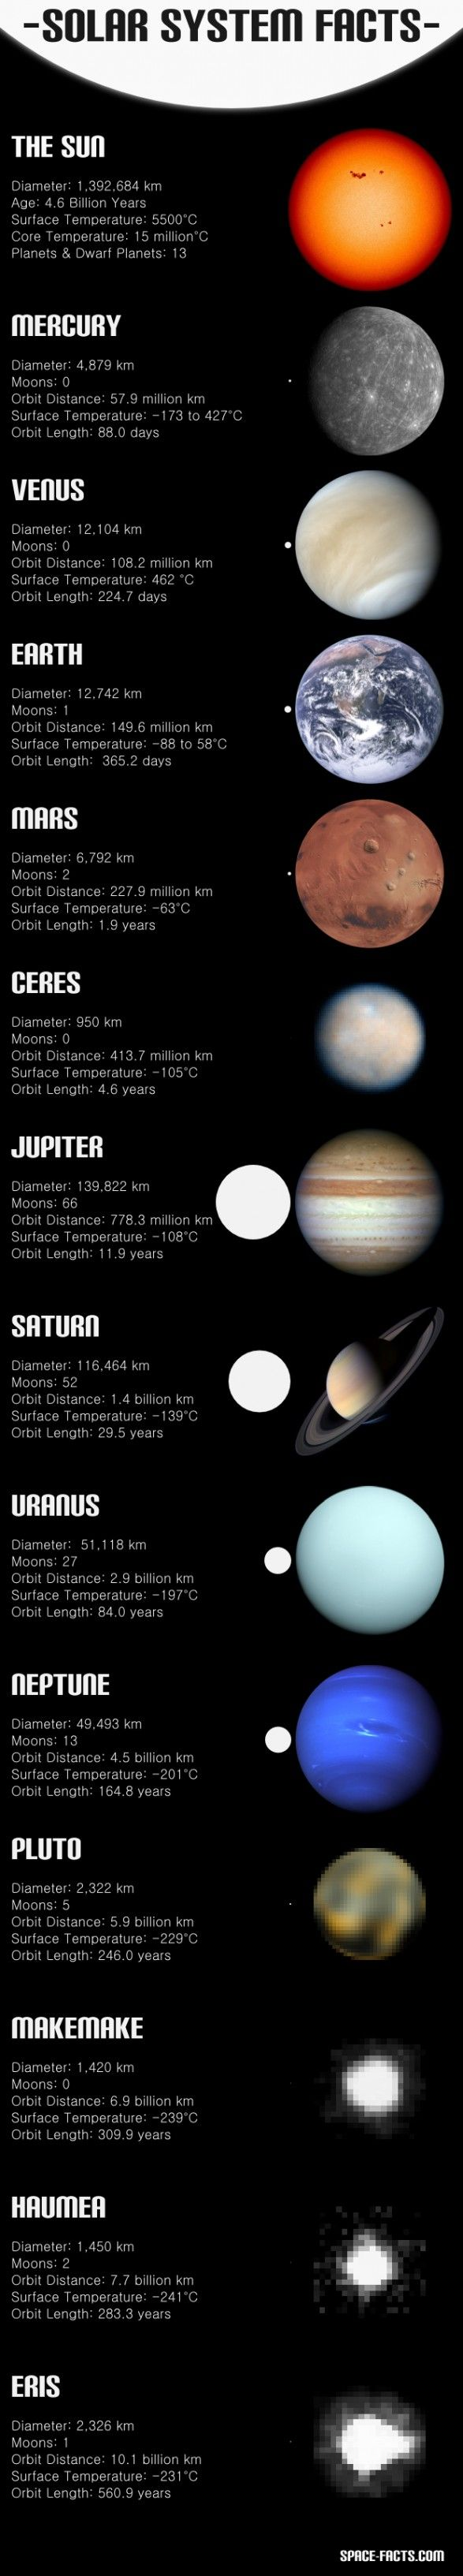 the solar system - Bing Images | The Solar System and ...